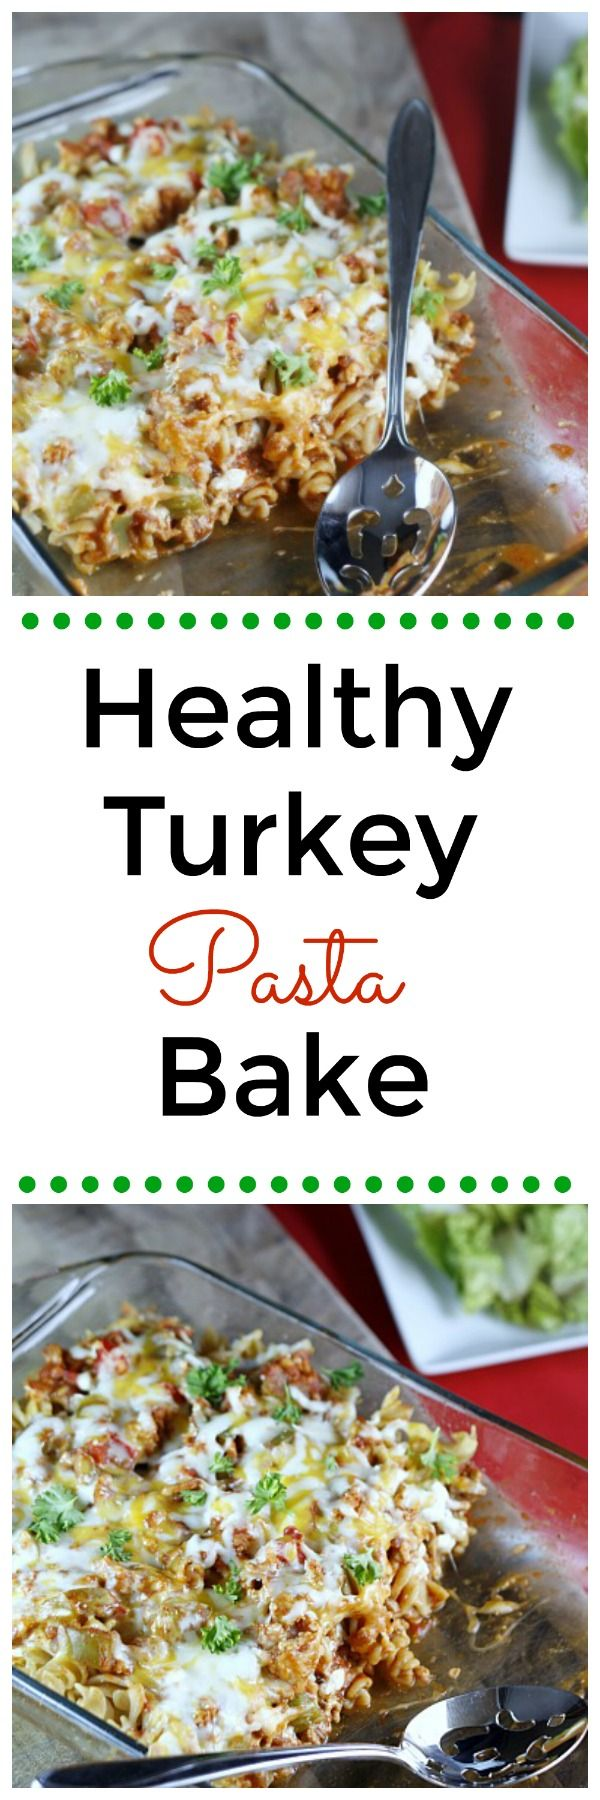 Healthy Turkey Pasta Bake! A family friendly meal that is healthy and delicious. Also makes great leftovers. Entree. Main Dish.